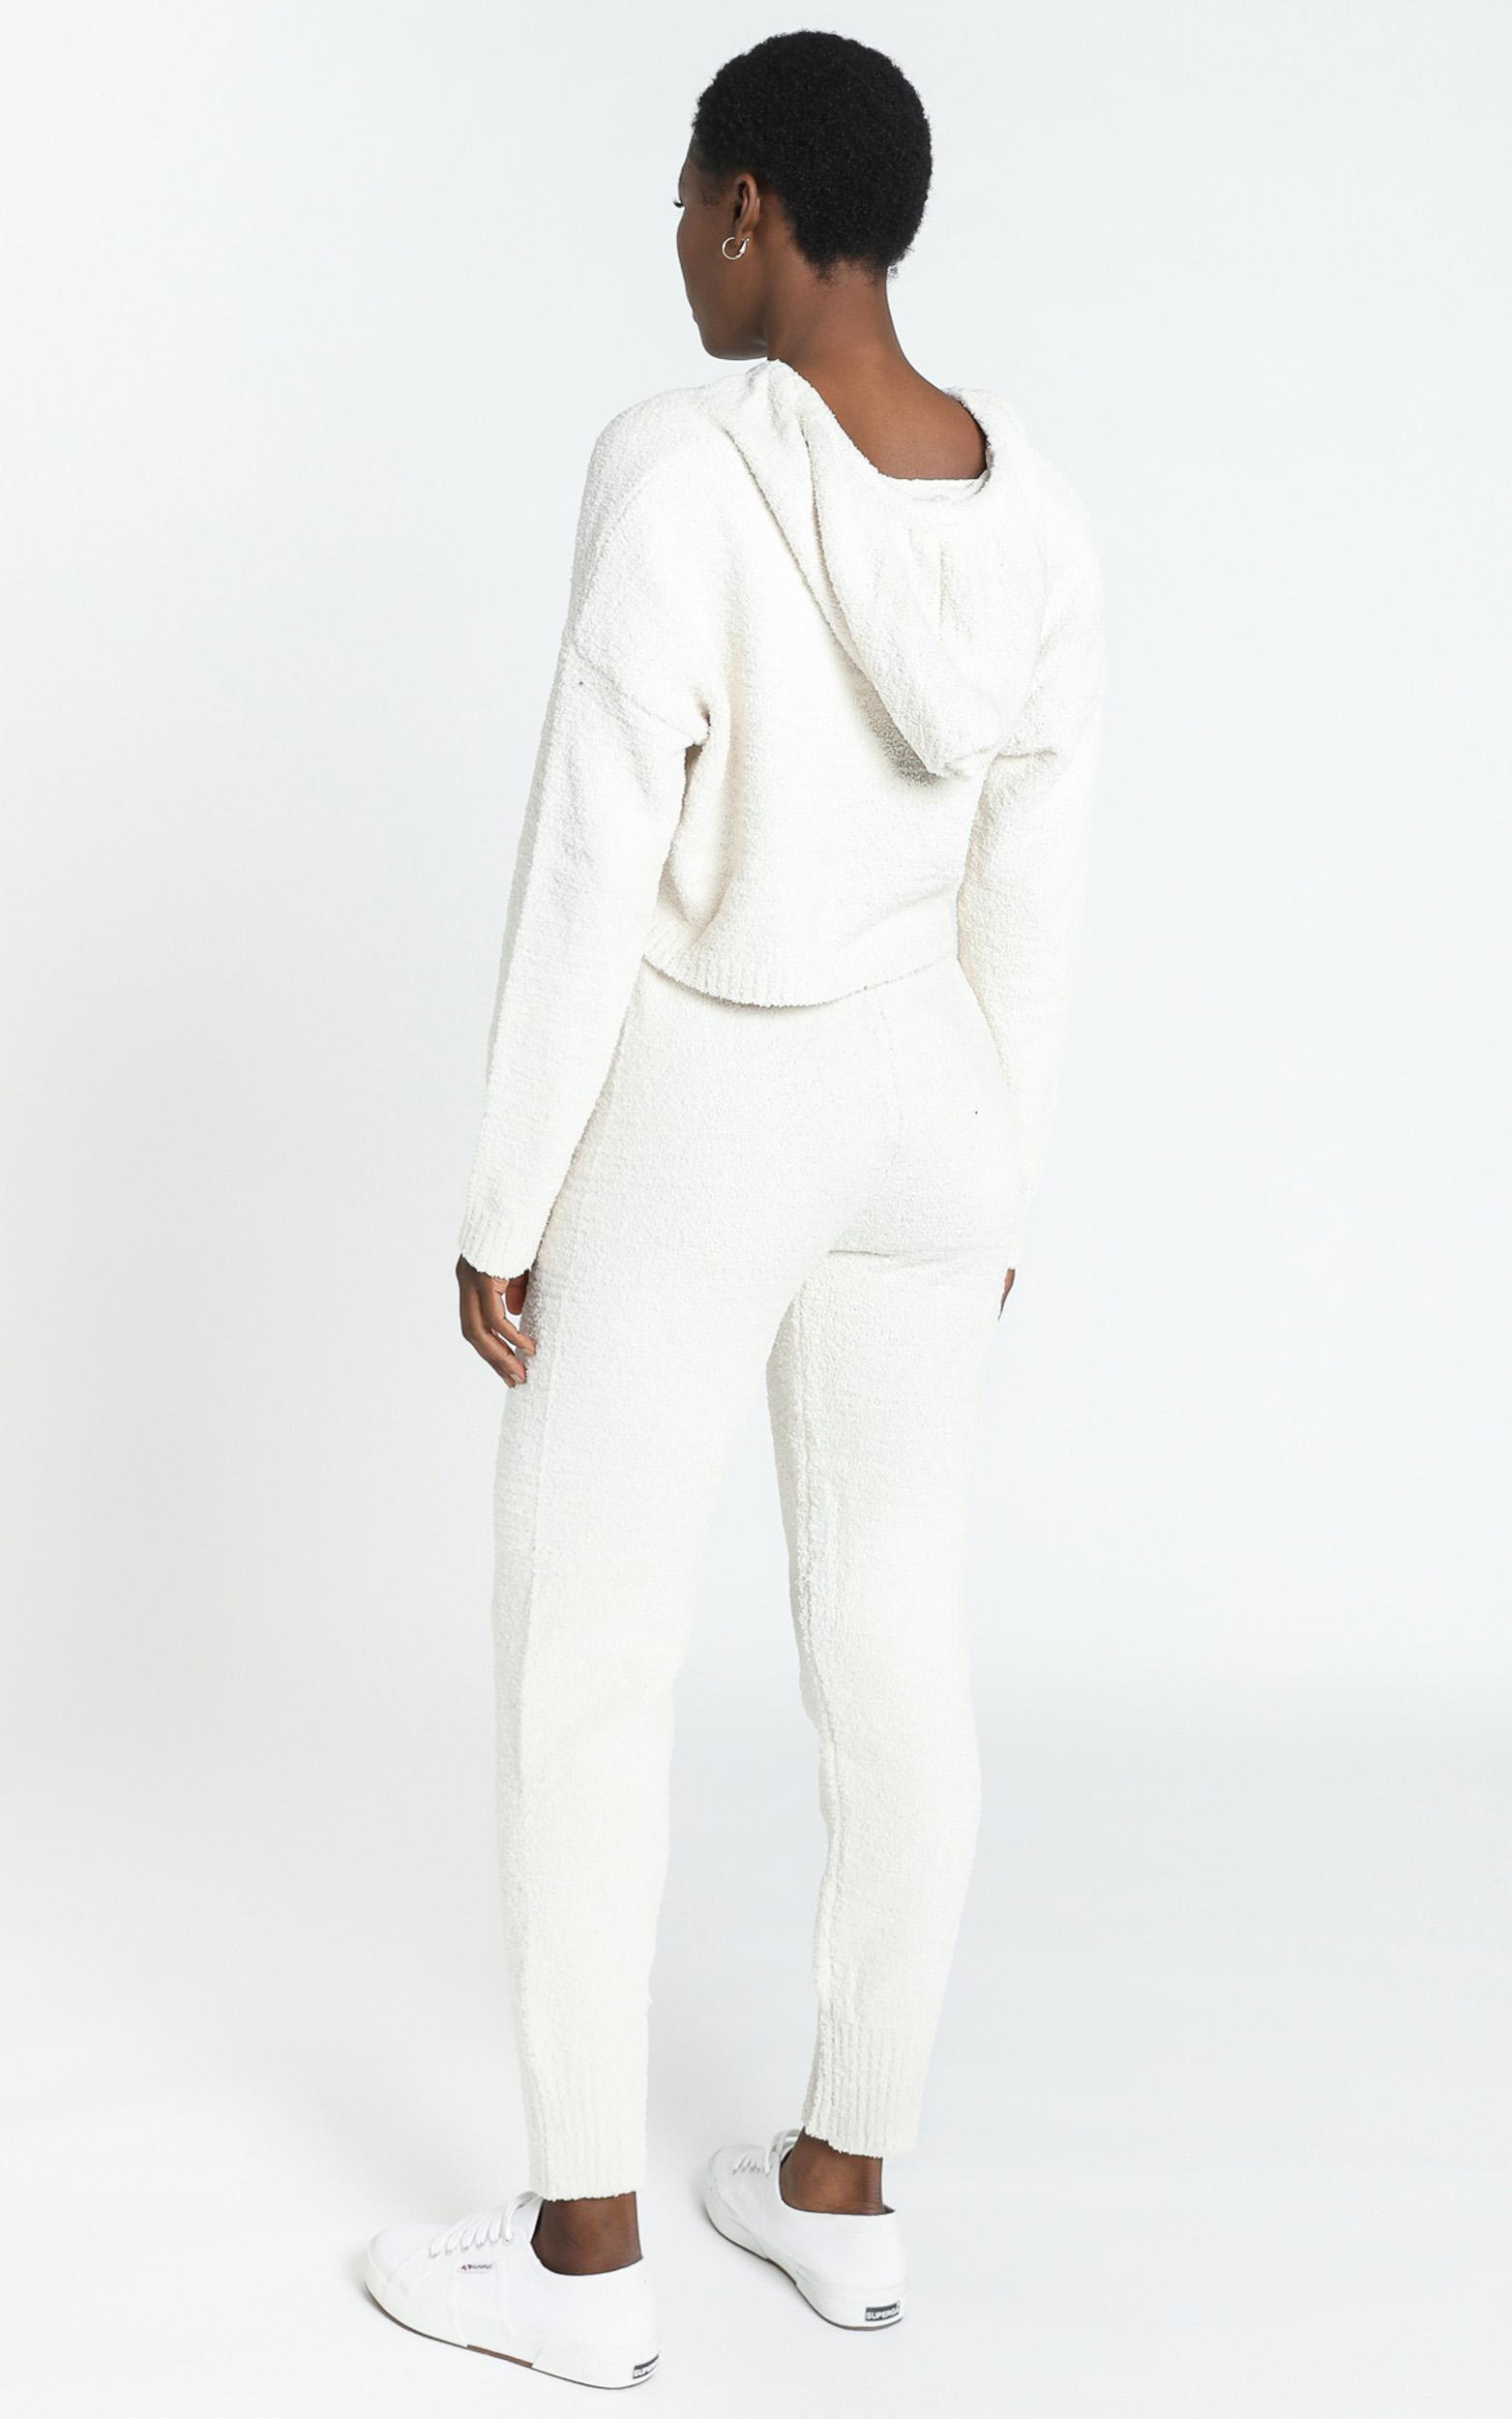 Adelie Super Soft Knit Pants in Cream - S, Cream, hi-res image number null